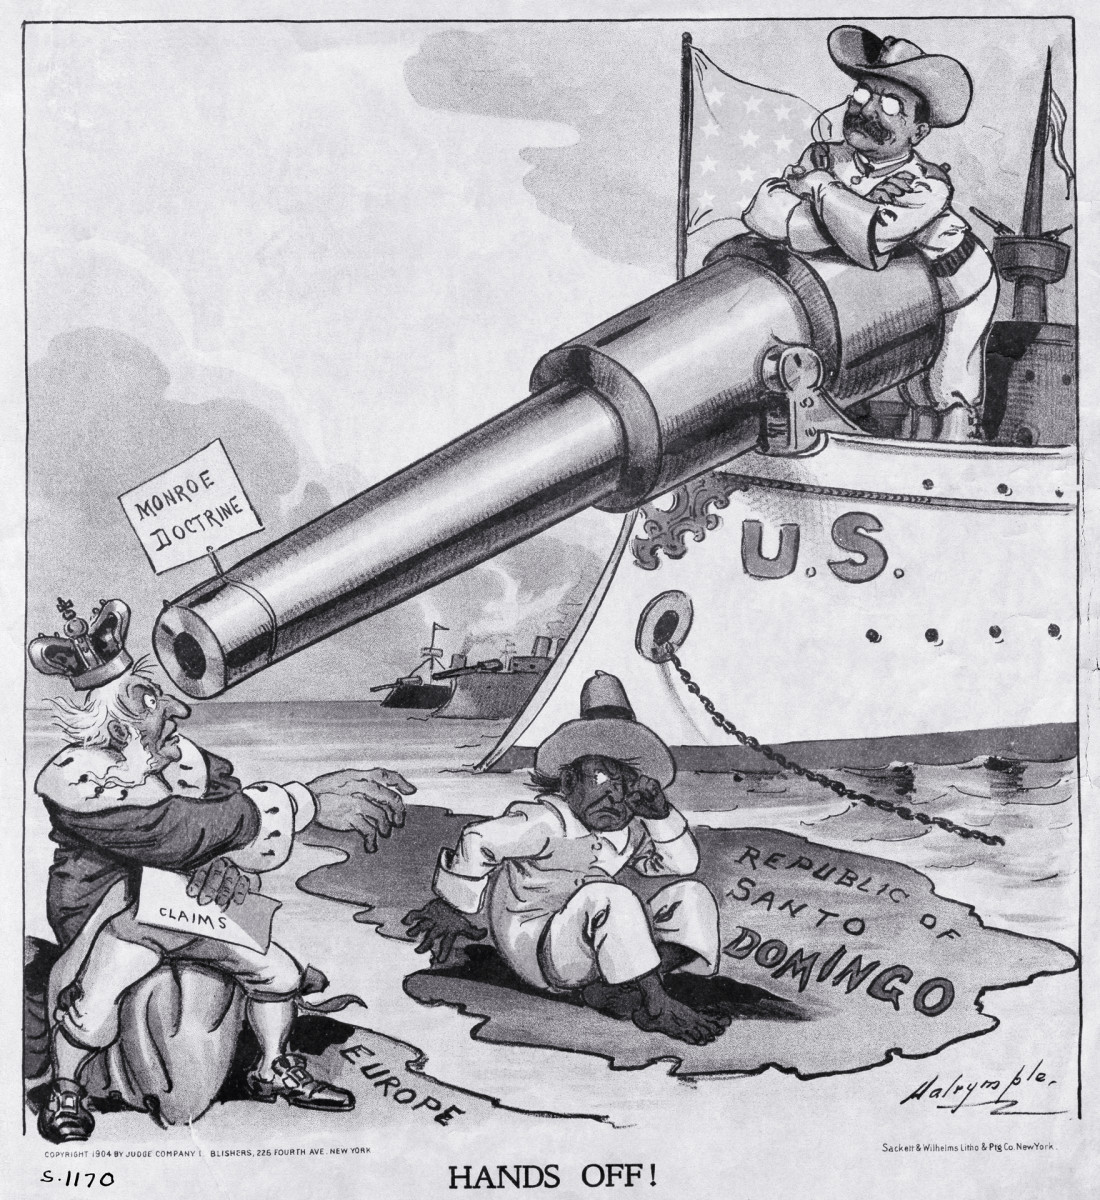 Theodore Roosevelt and the Monroe Doctrine, cartoon